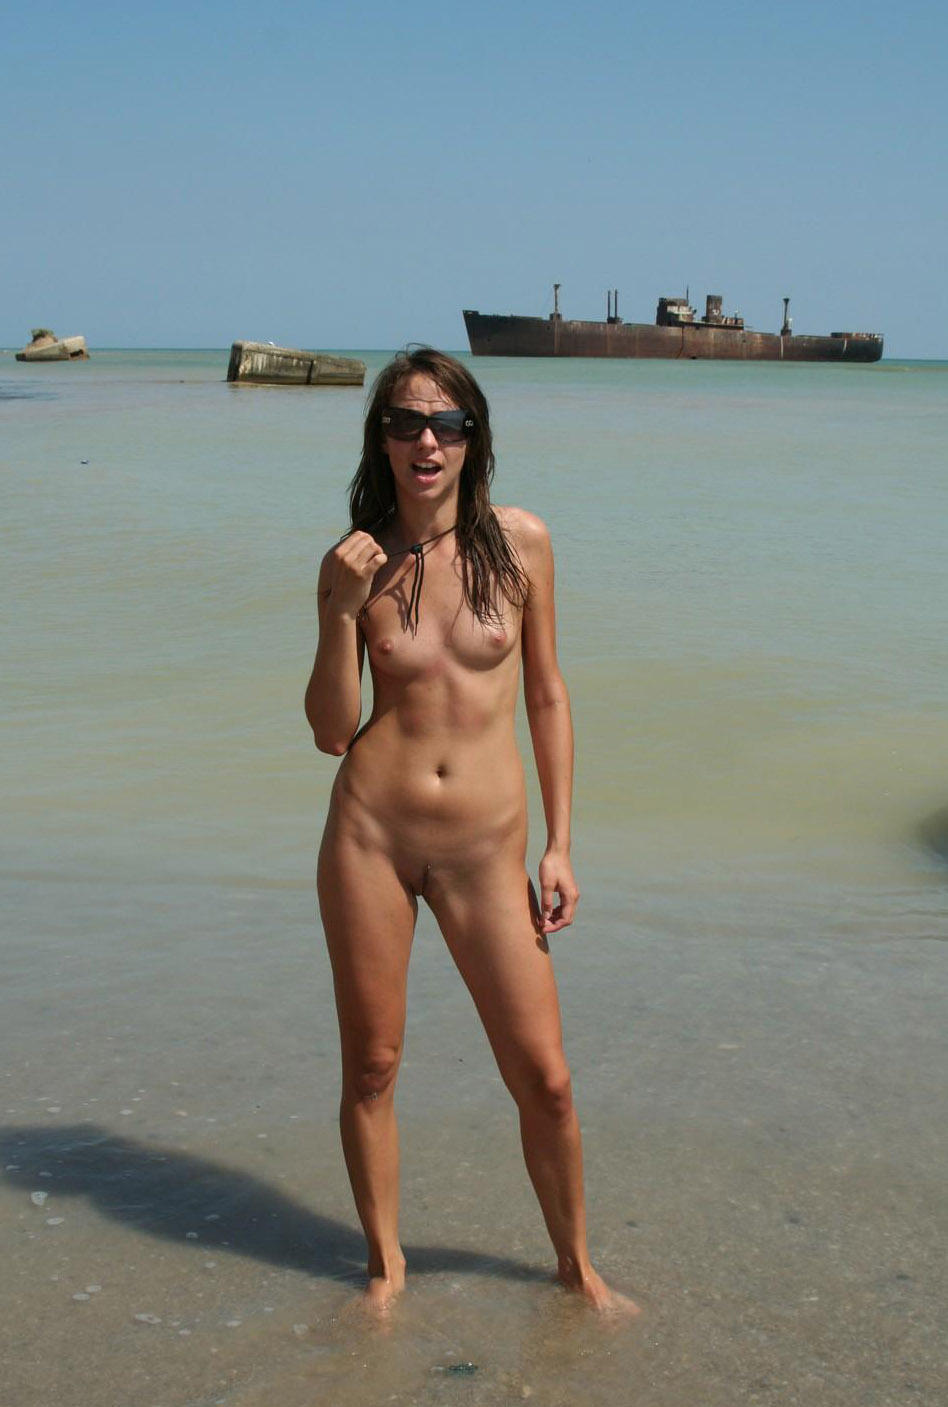 Nudist beach babe exposing her naked body